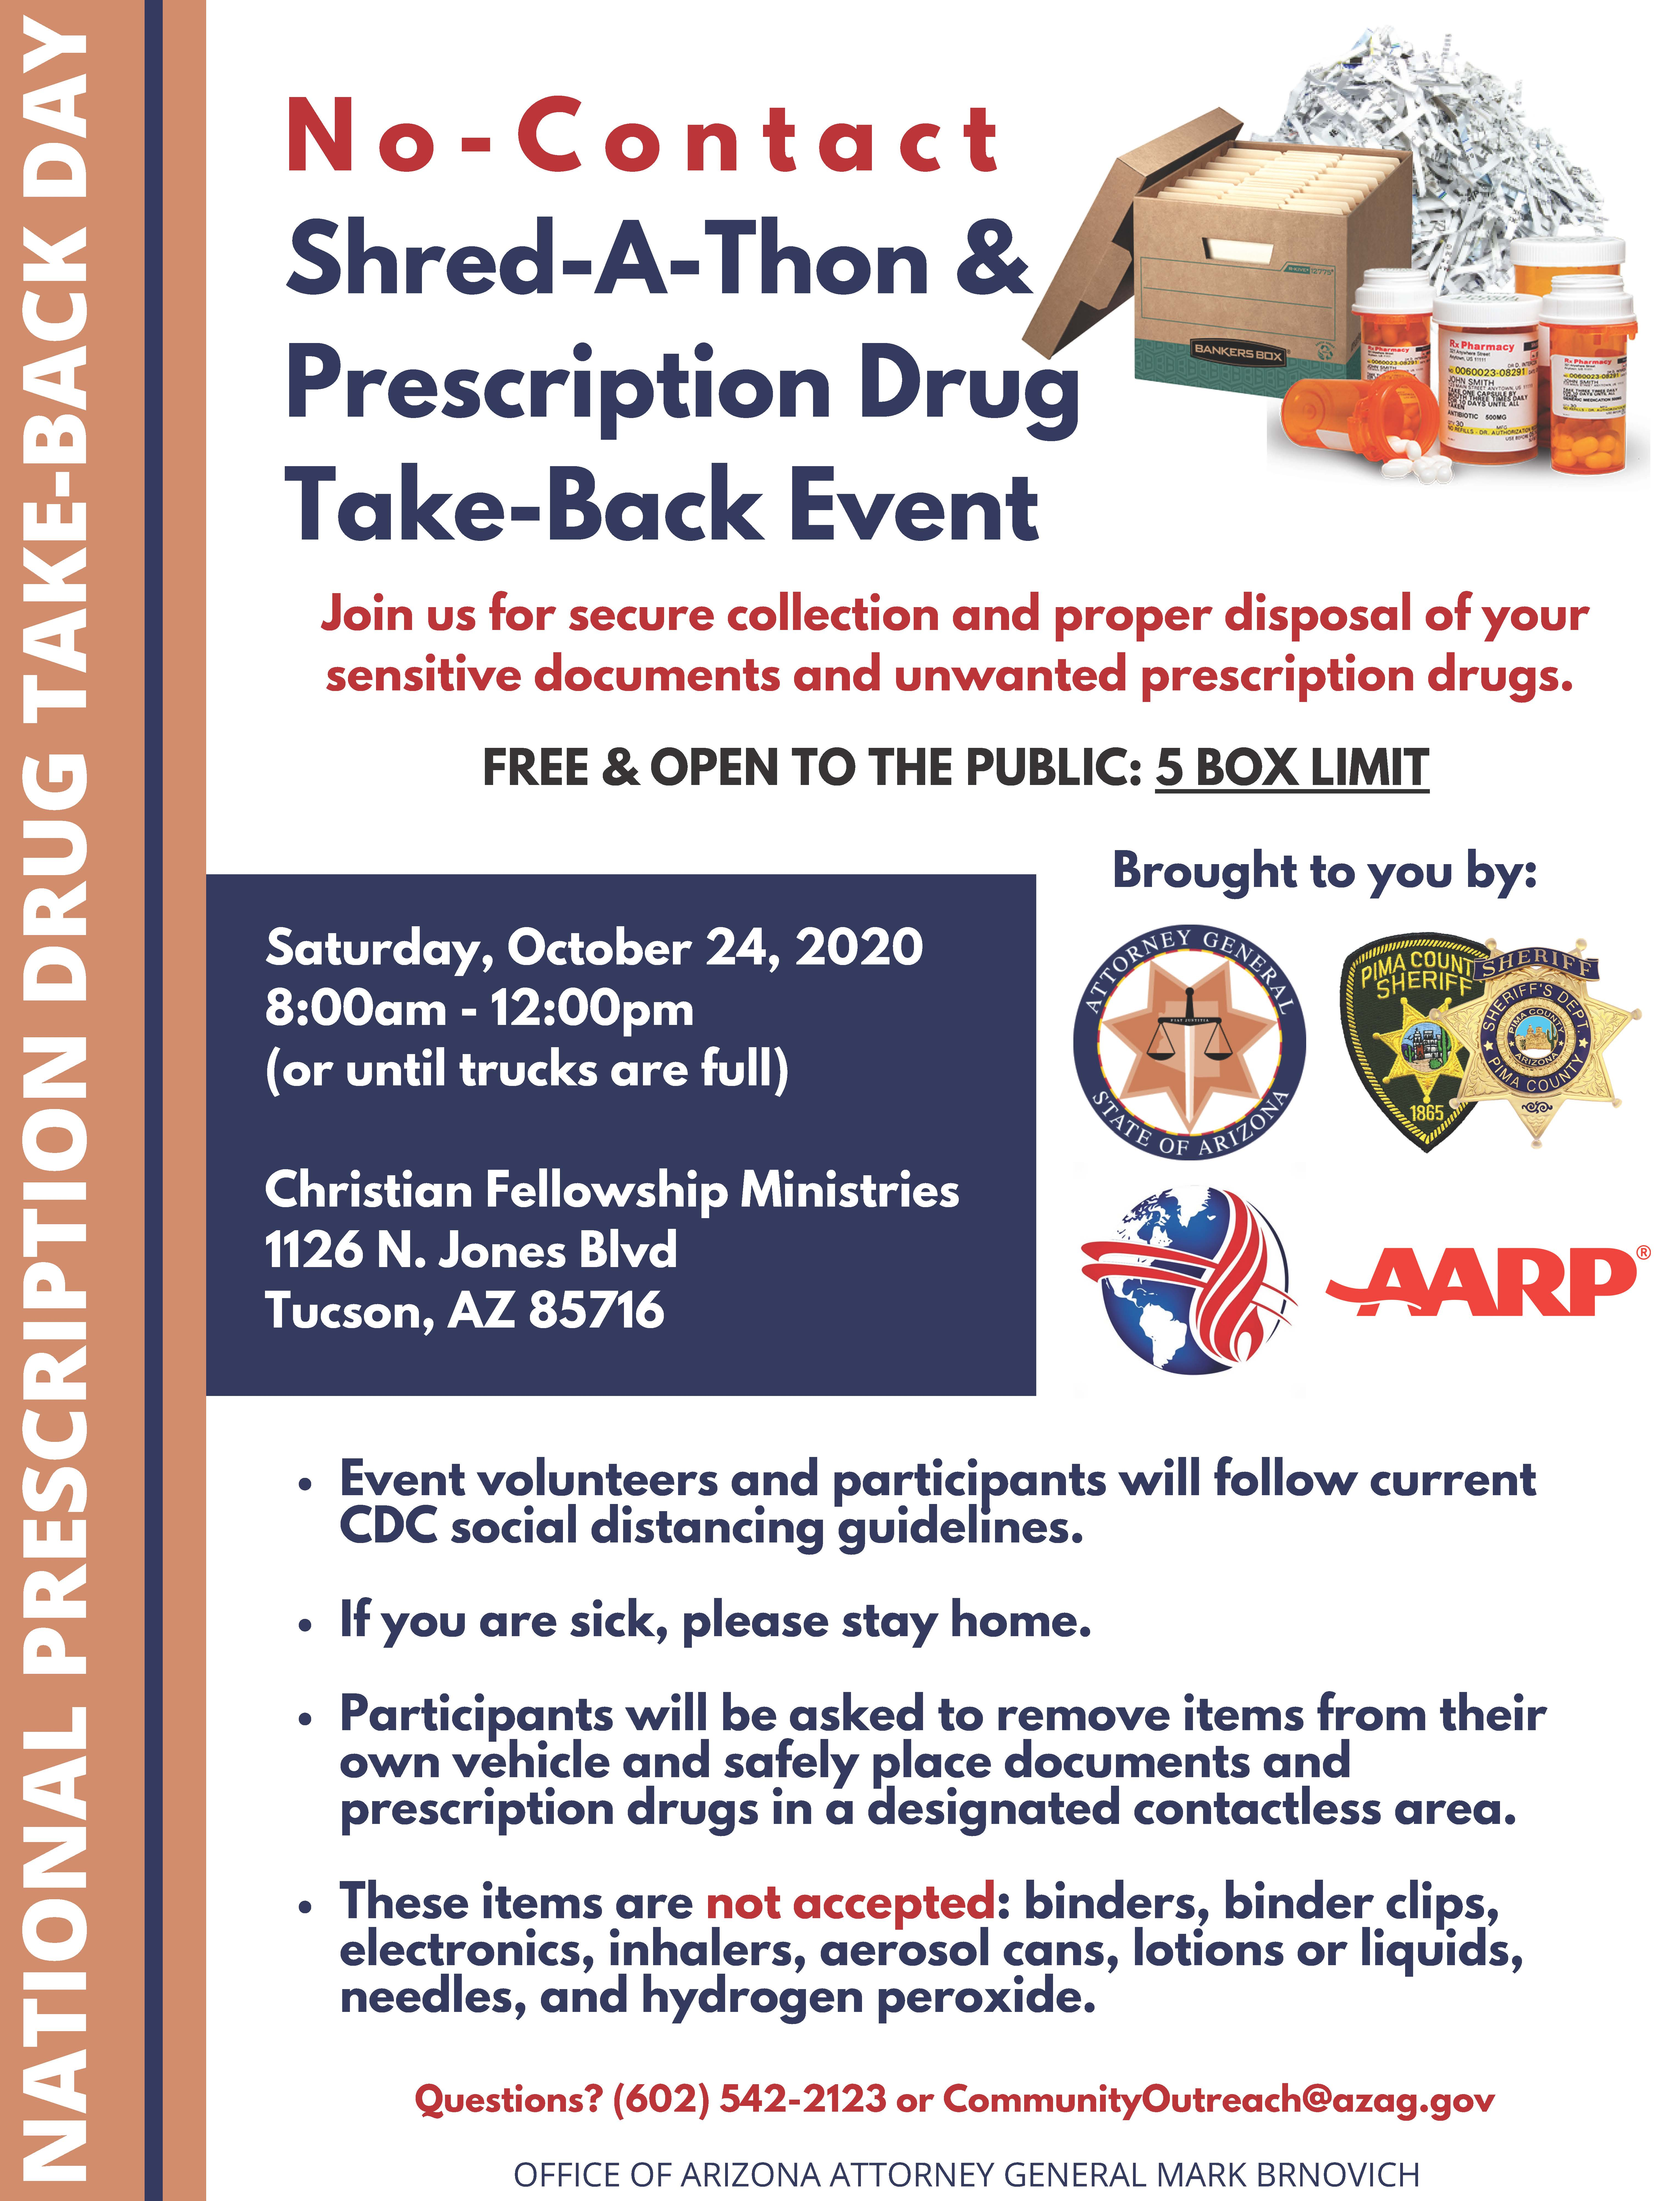 Flyer of Shred-a-thon and Drug Take-Back event